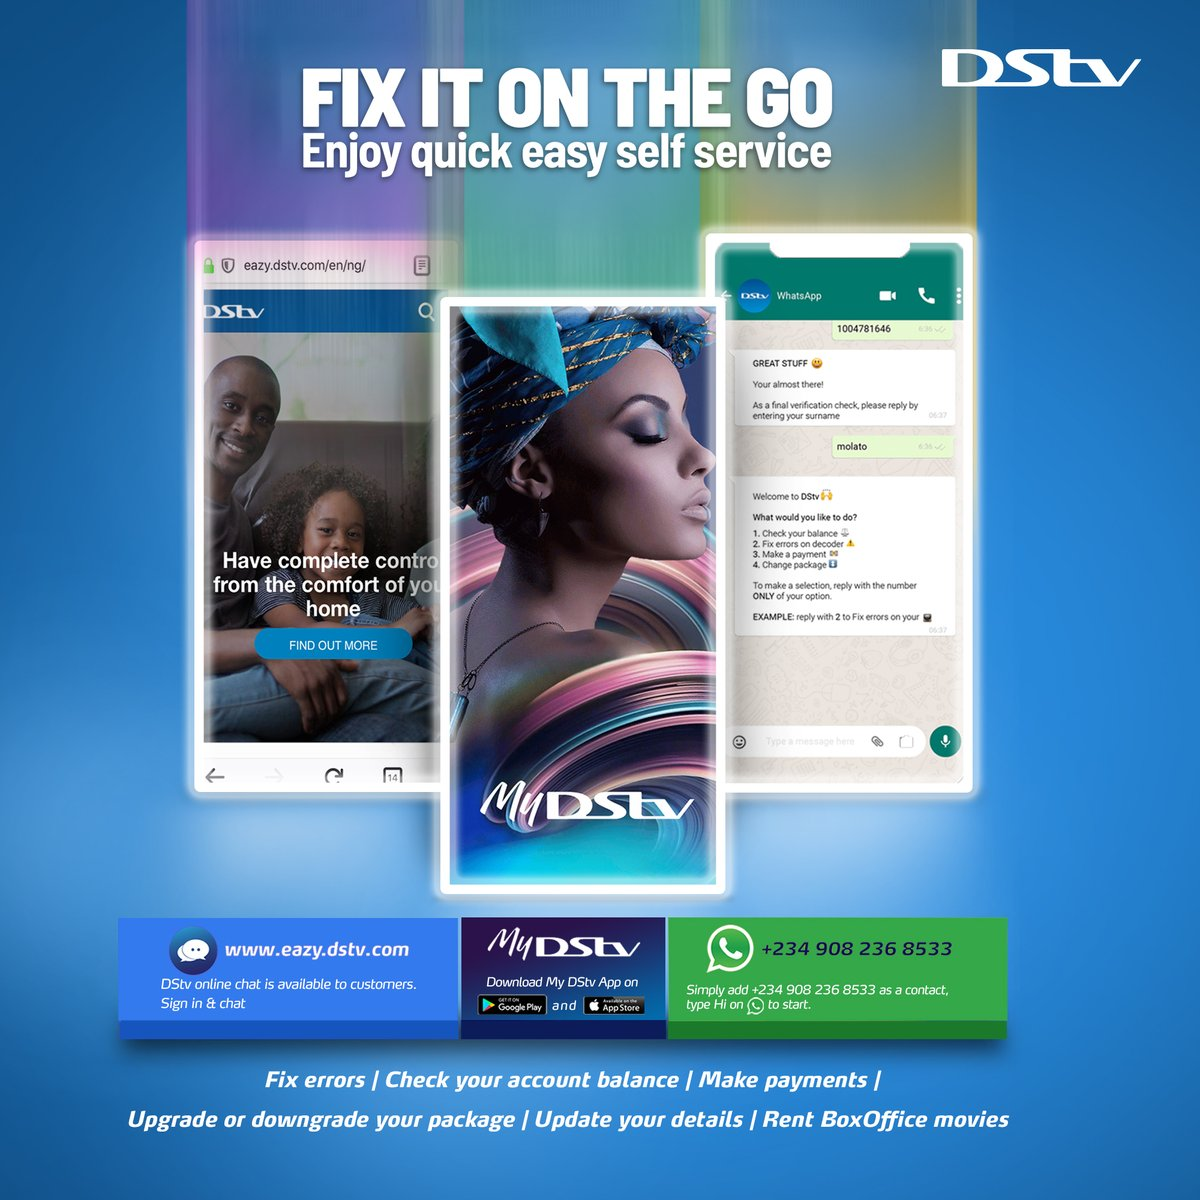 No need to stress yoursef! Fix it on the go with our DStv self service options! Download the MyDStv app and chat with us on WhatsApp +2349082368533 You can also log on to eazy.dstv.com #DStvFixItOnTheGo